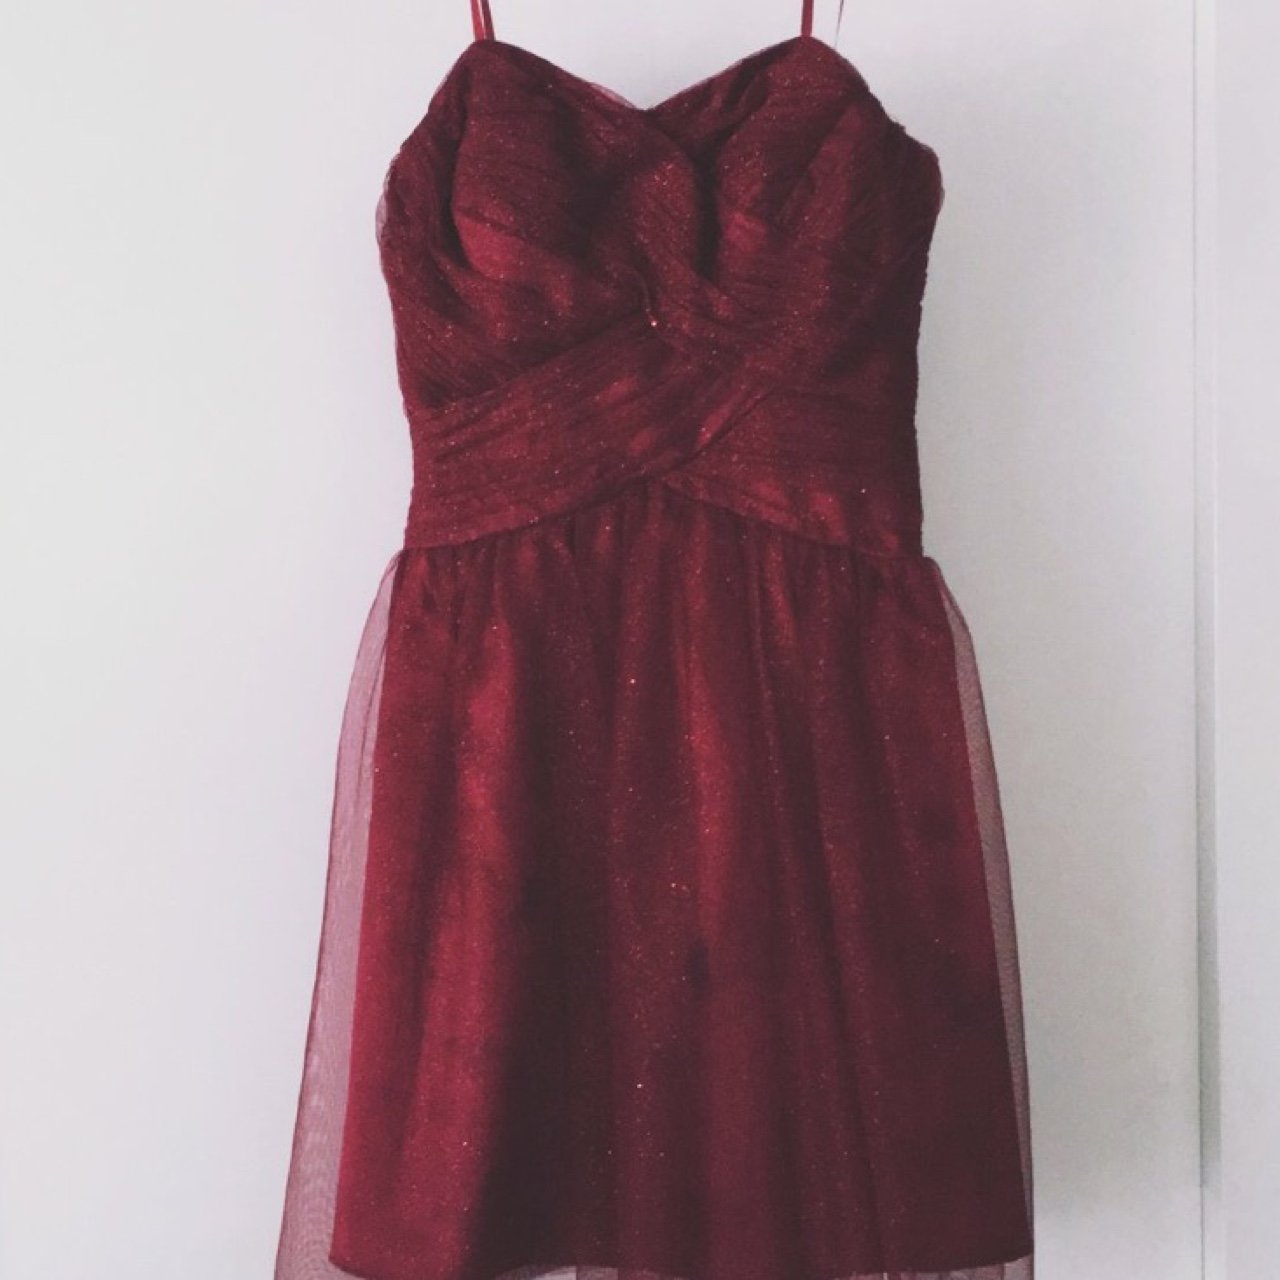 a86283749a Burgundy Cocktail Dress Nordstrom - Gomes Weine AG